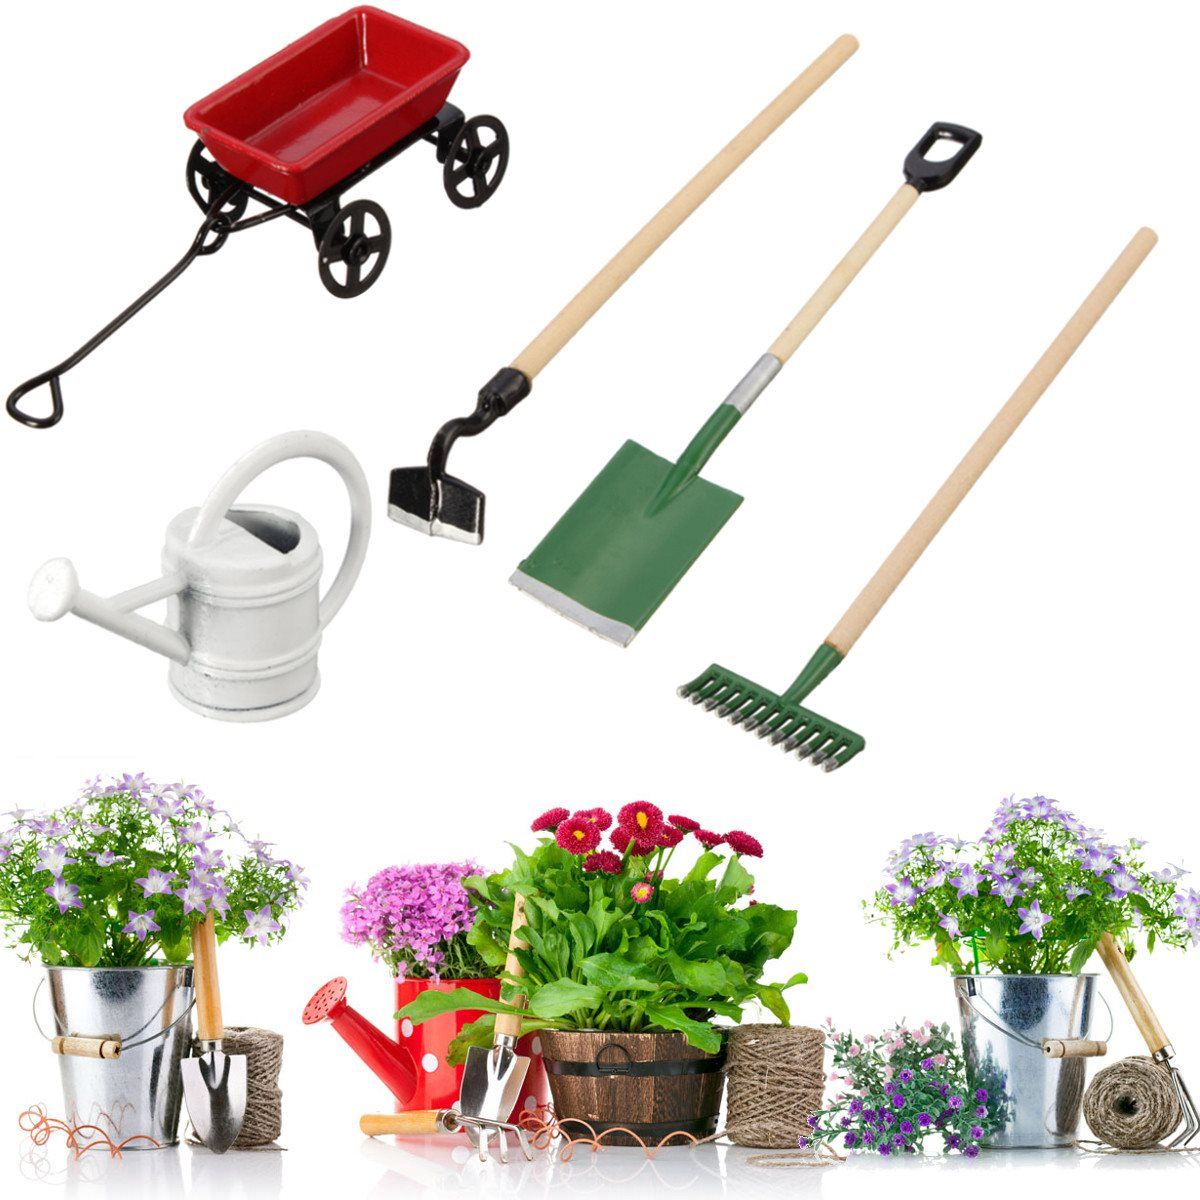 DIY Miniatura Metal Watering Can Pulling Cart Spade Rake Garden Tools For Children Dolls House Miniatures Accessories Set